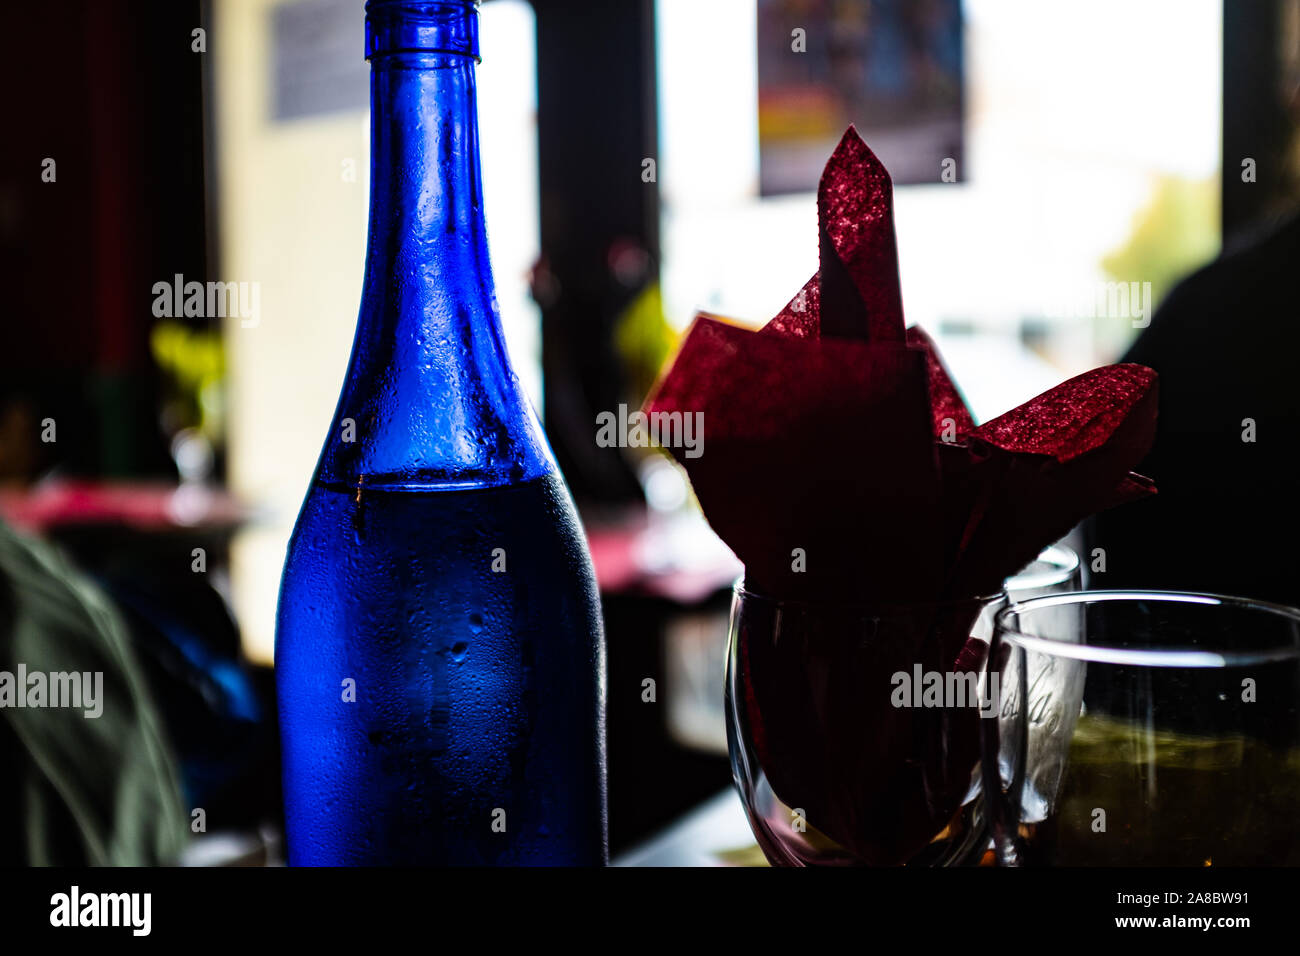 Blue Bottle Of Water On A Dark Restaurant Stock Photo Alamy